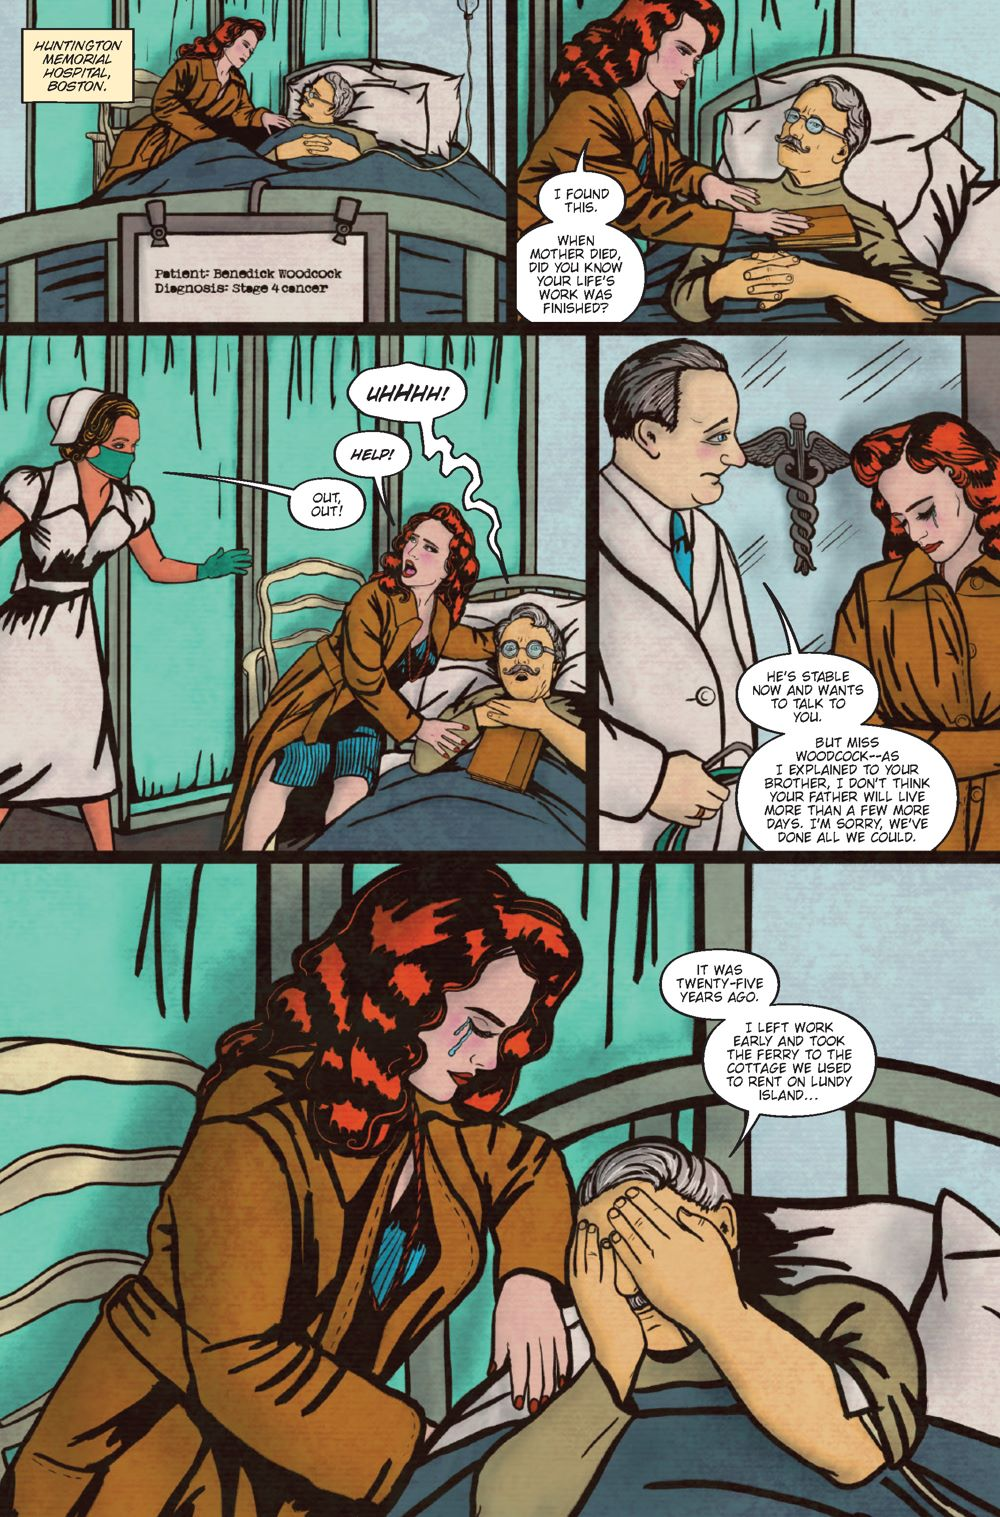 Pages-from-Binder3_Page_5 ComicList Previews: MINKY WOODCOCK THE GIRL WHO ELECTRIFIED TESLA #4